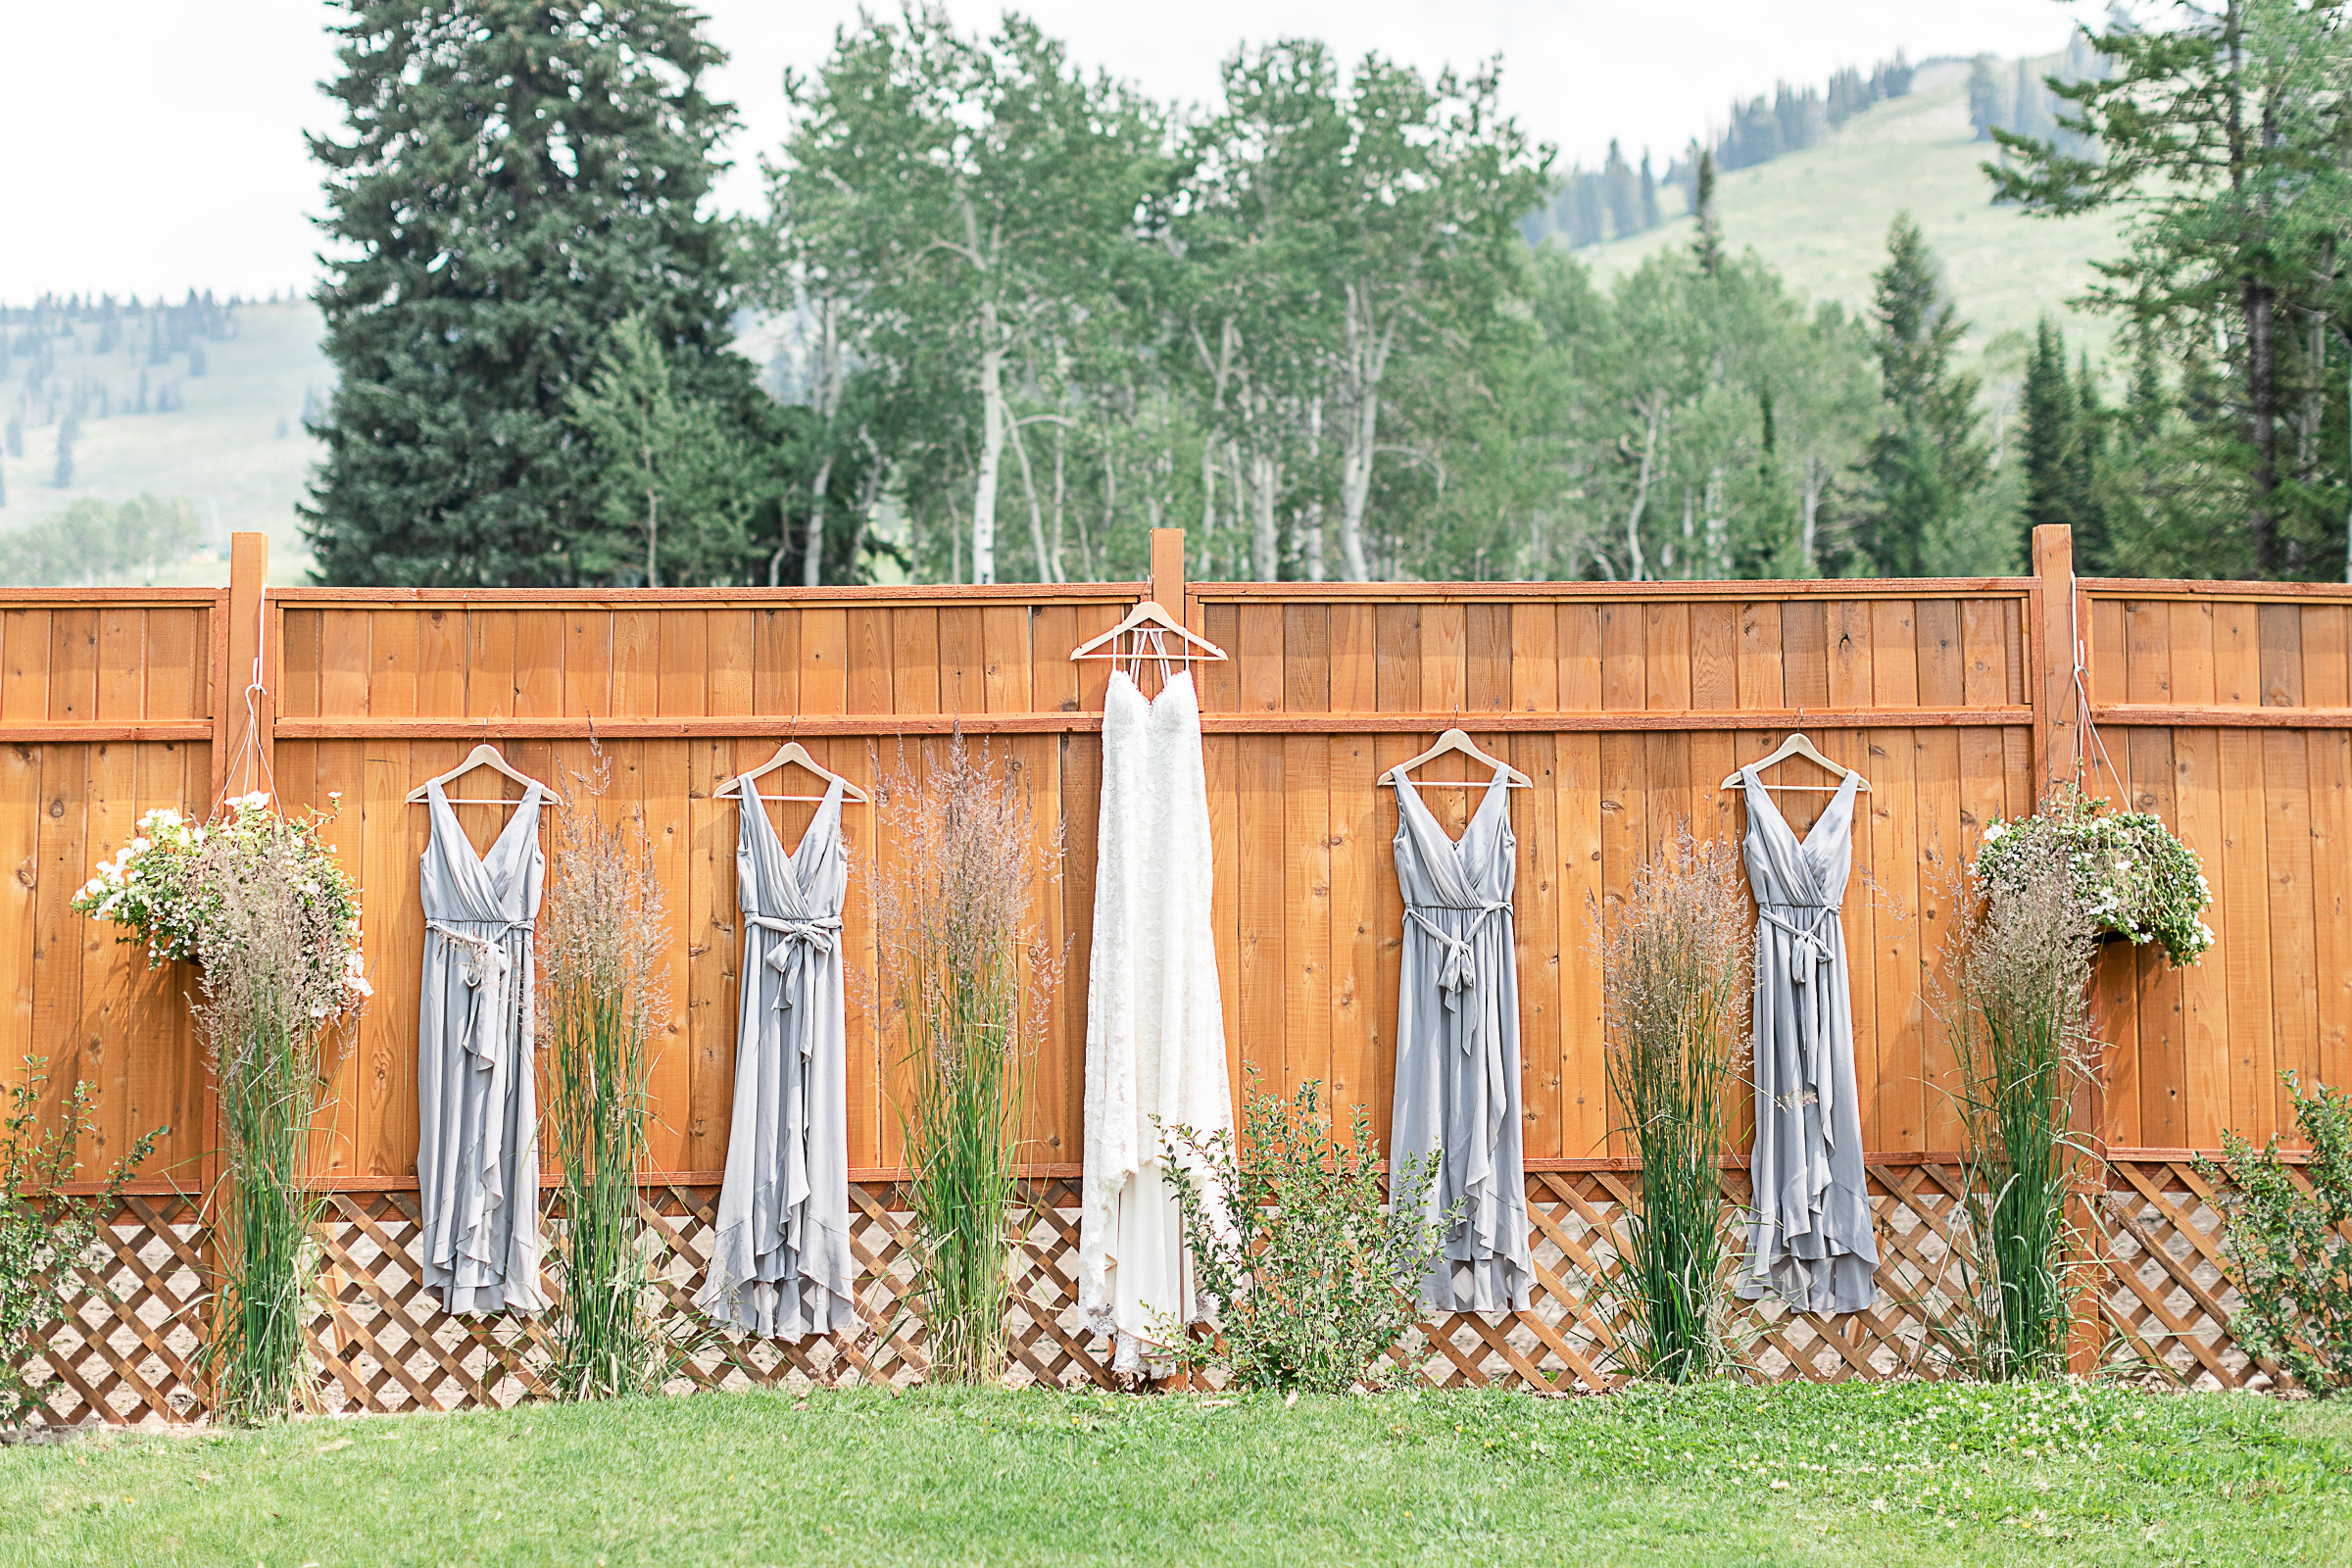 Pat and Shannon Grand Targhee Wyoming Wedding Grand Teton National Park-1.jpg